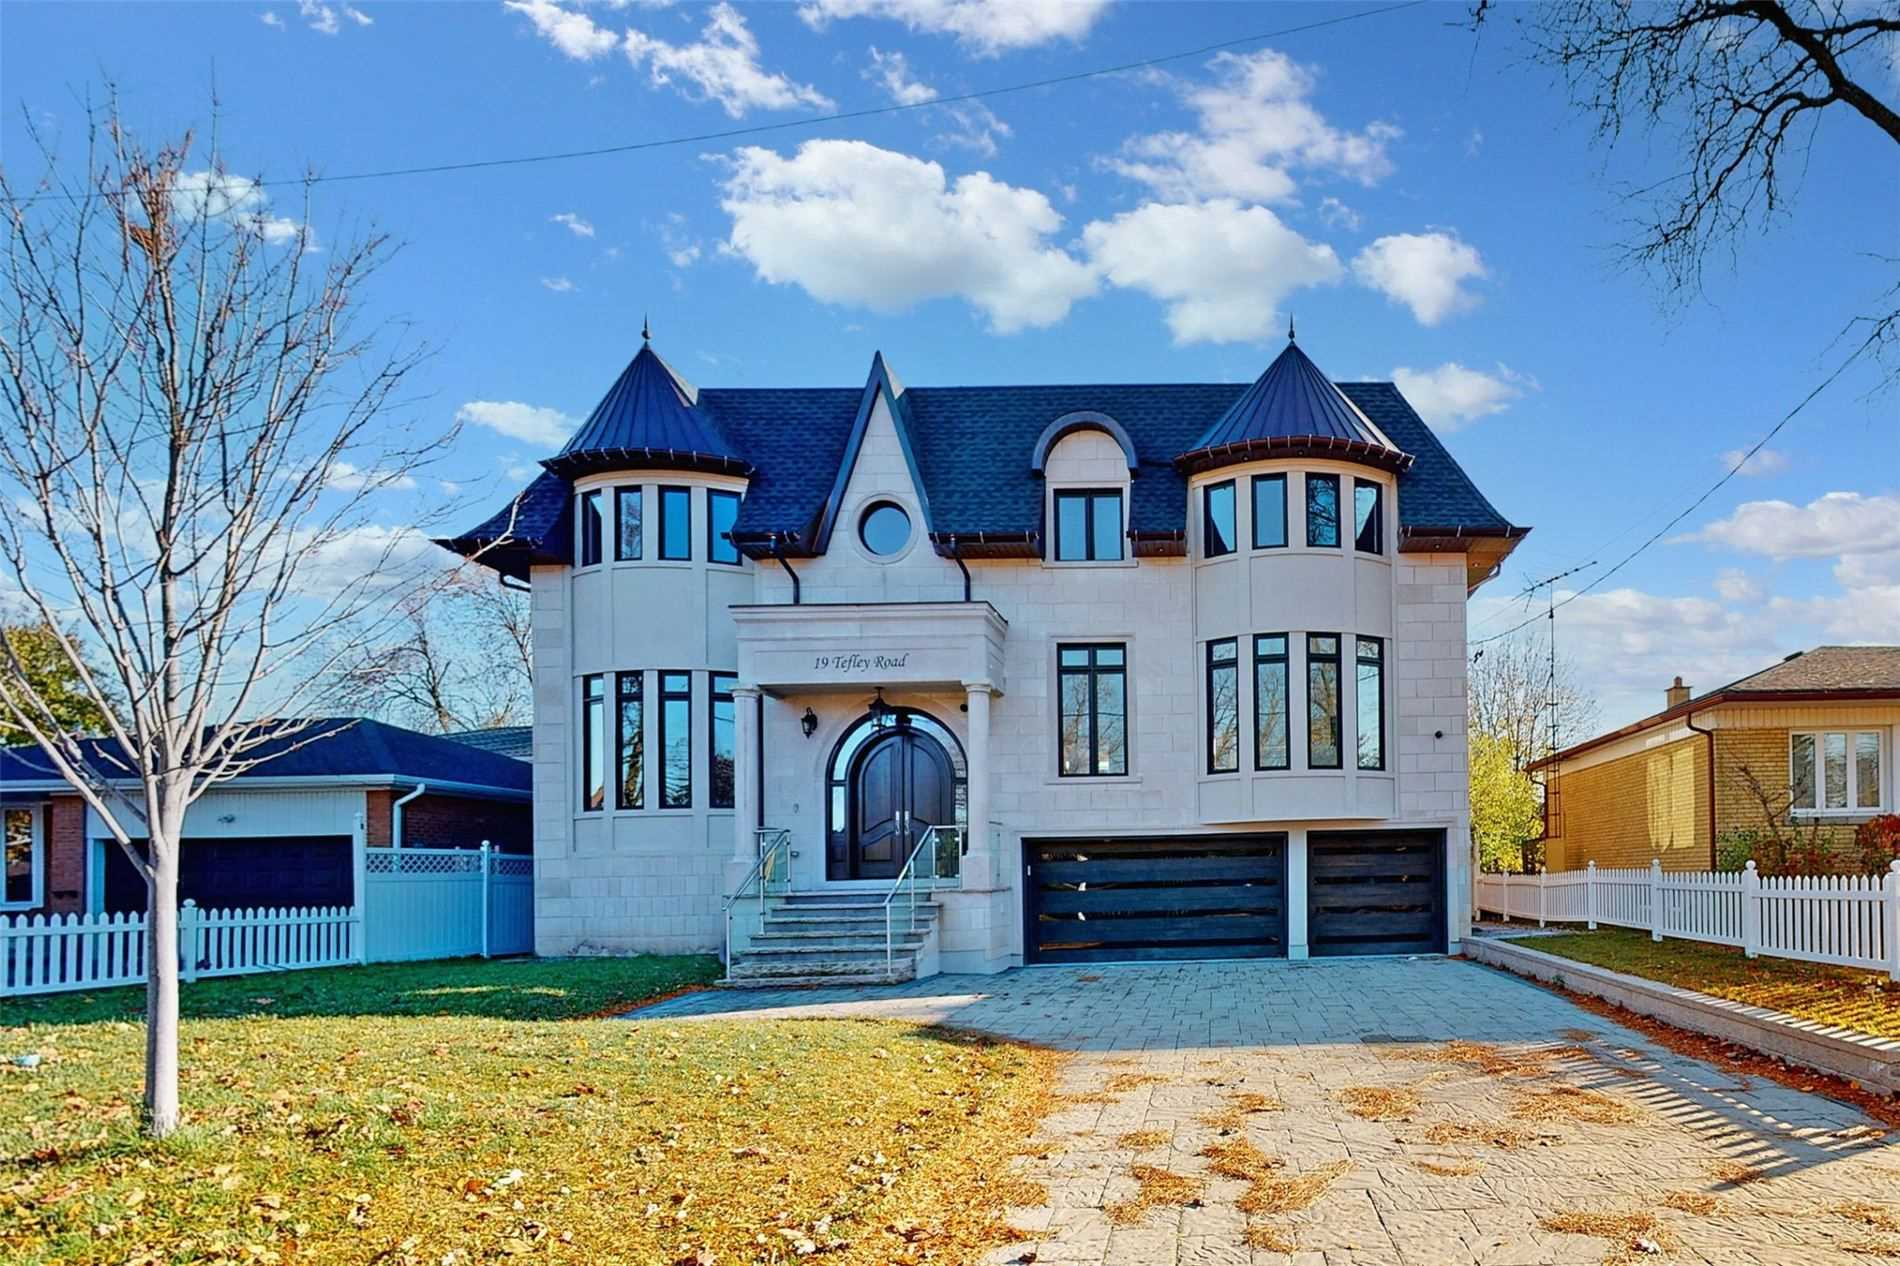 19 Tefley Rd, Toronto, Ontario M2M1C5, 5 Bedrooms Bedrooms, 10 Rooms Rooms,7 BathroomsBathrooms,Detached,For Sale,Tefley,C4980630